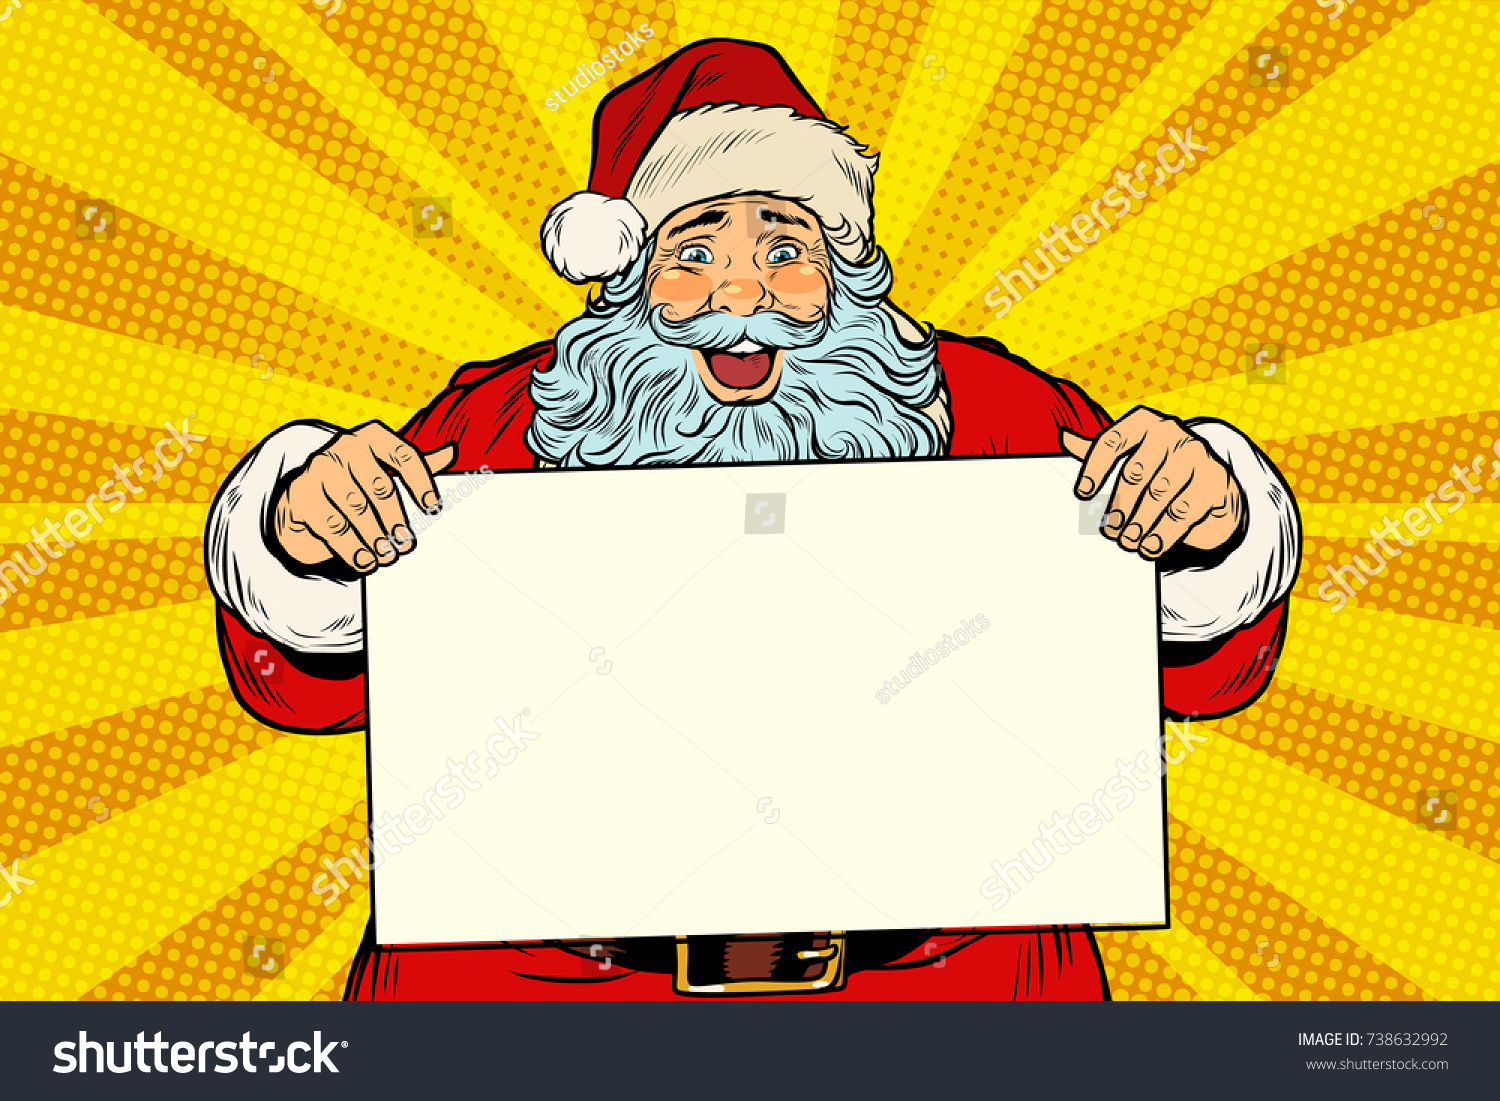 Joyful Santa Claus Poster Template Pop Stock Vector 738632992 ...